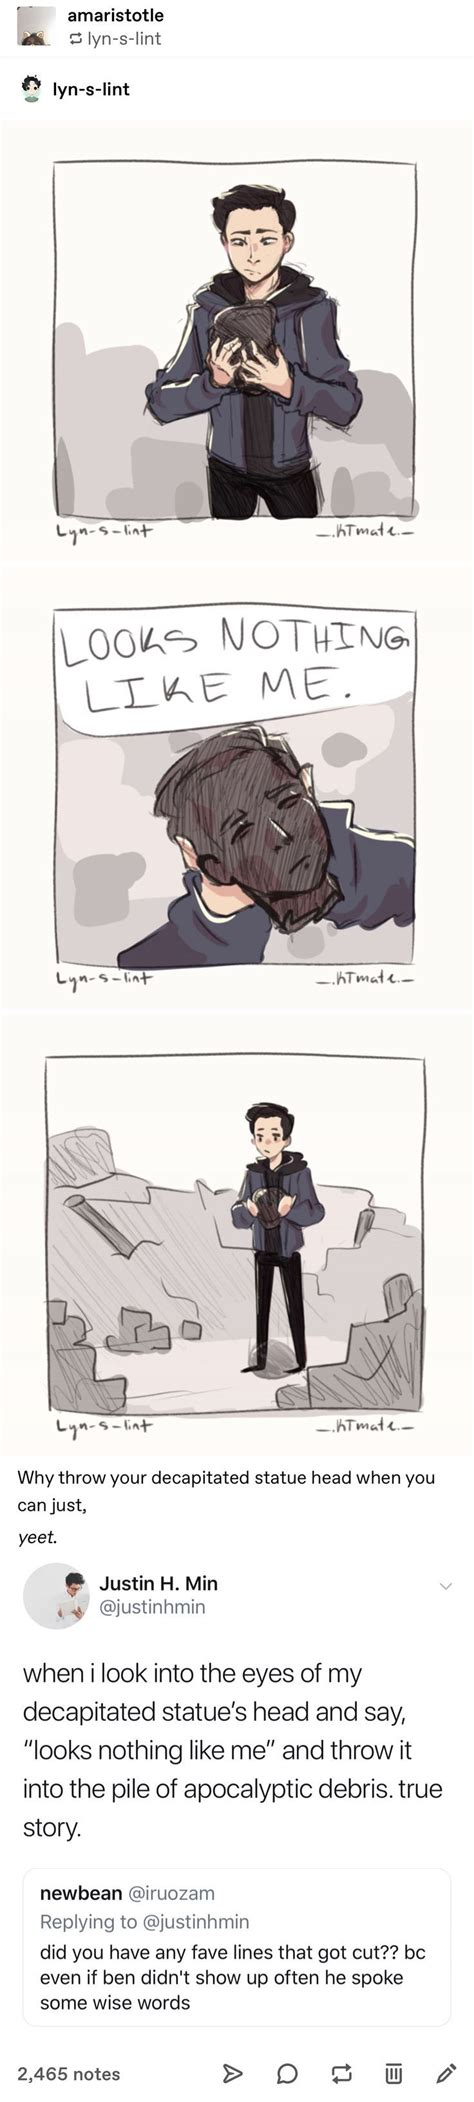 The umbrella academy ben hargreeves fanart funny tumblr ...